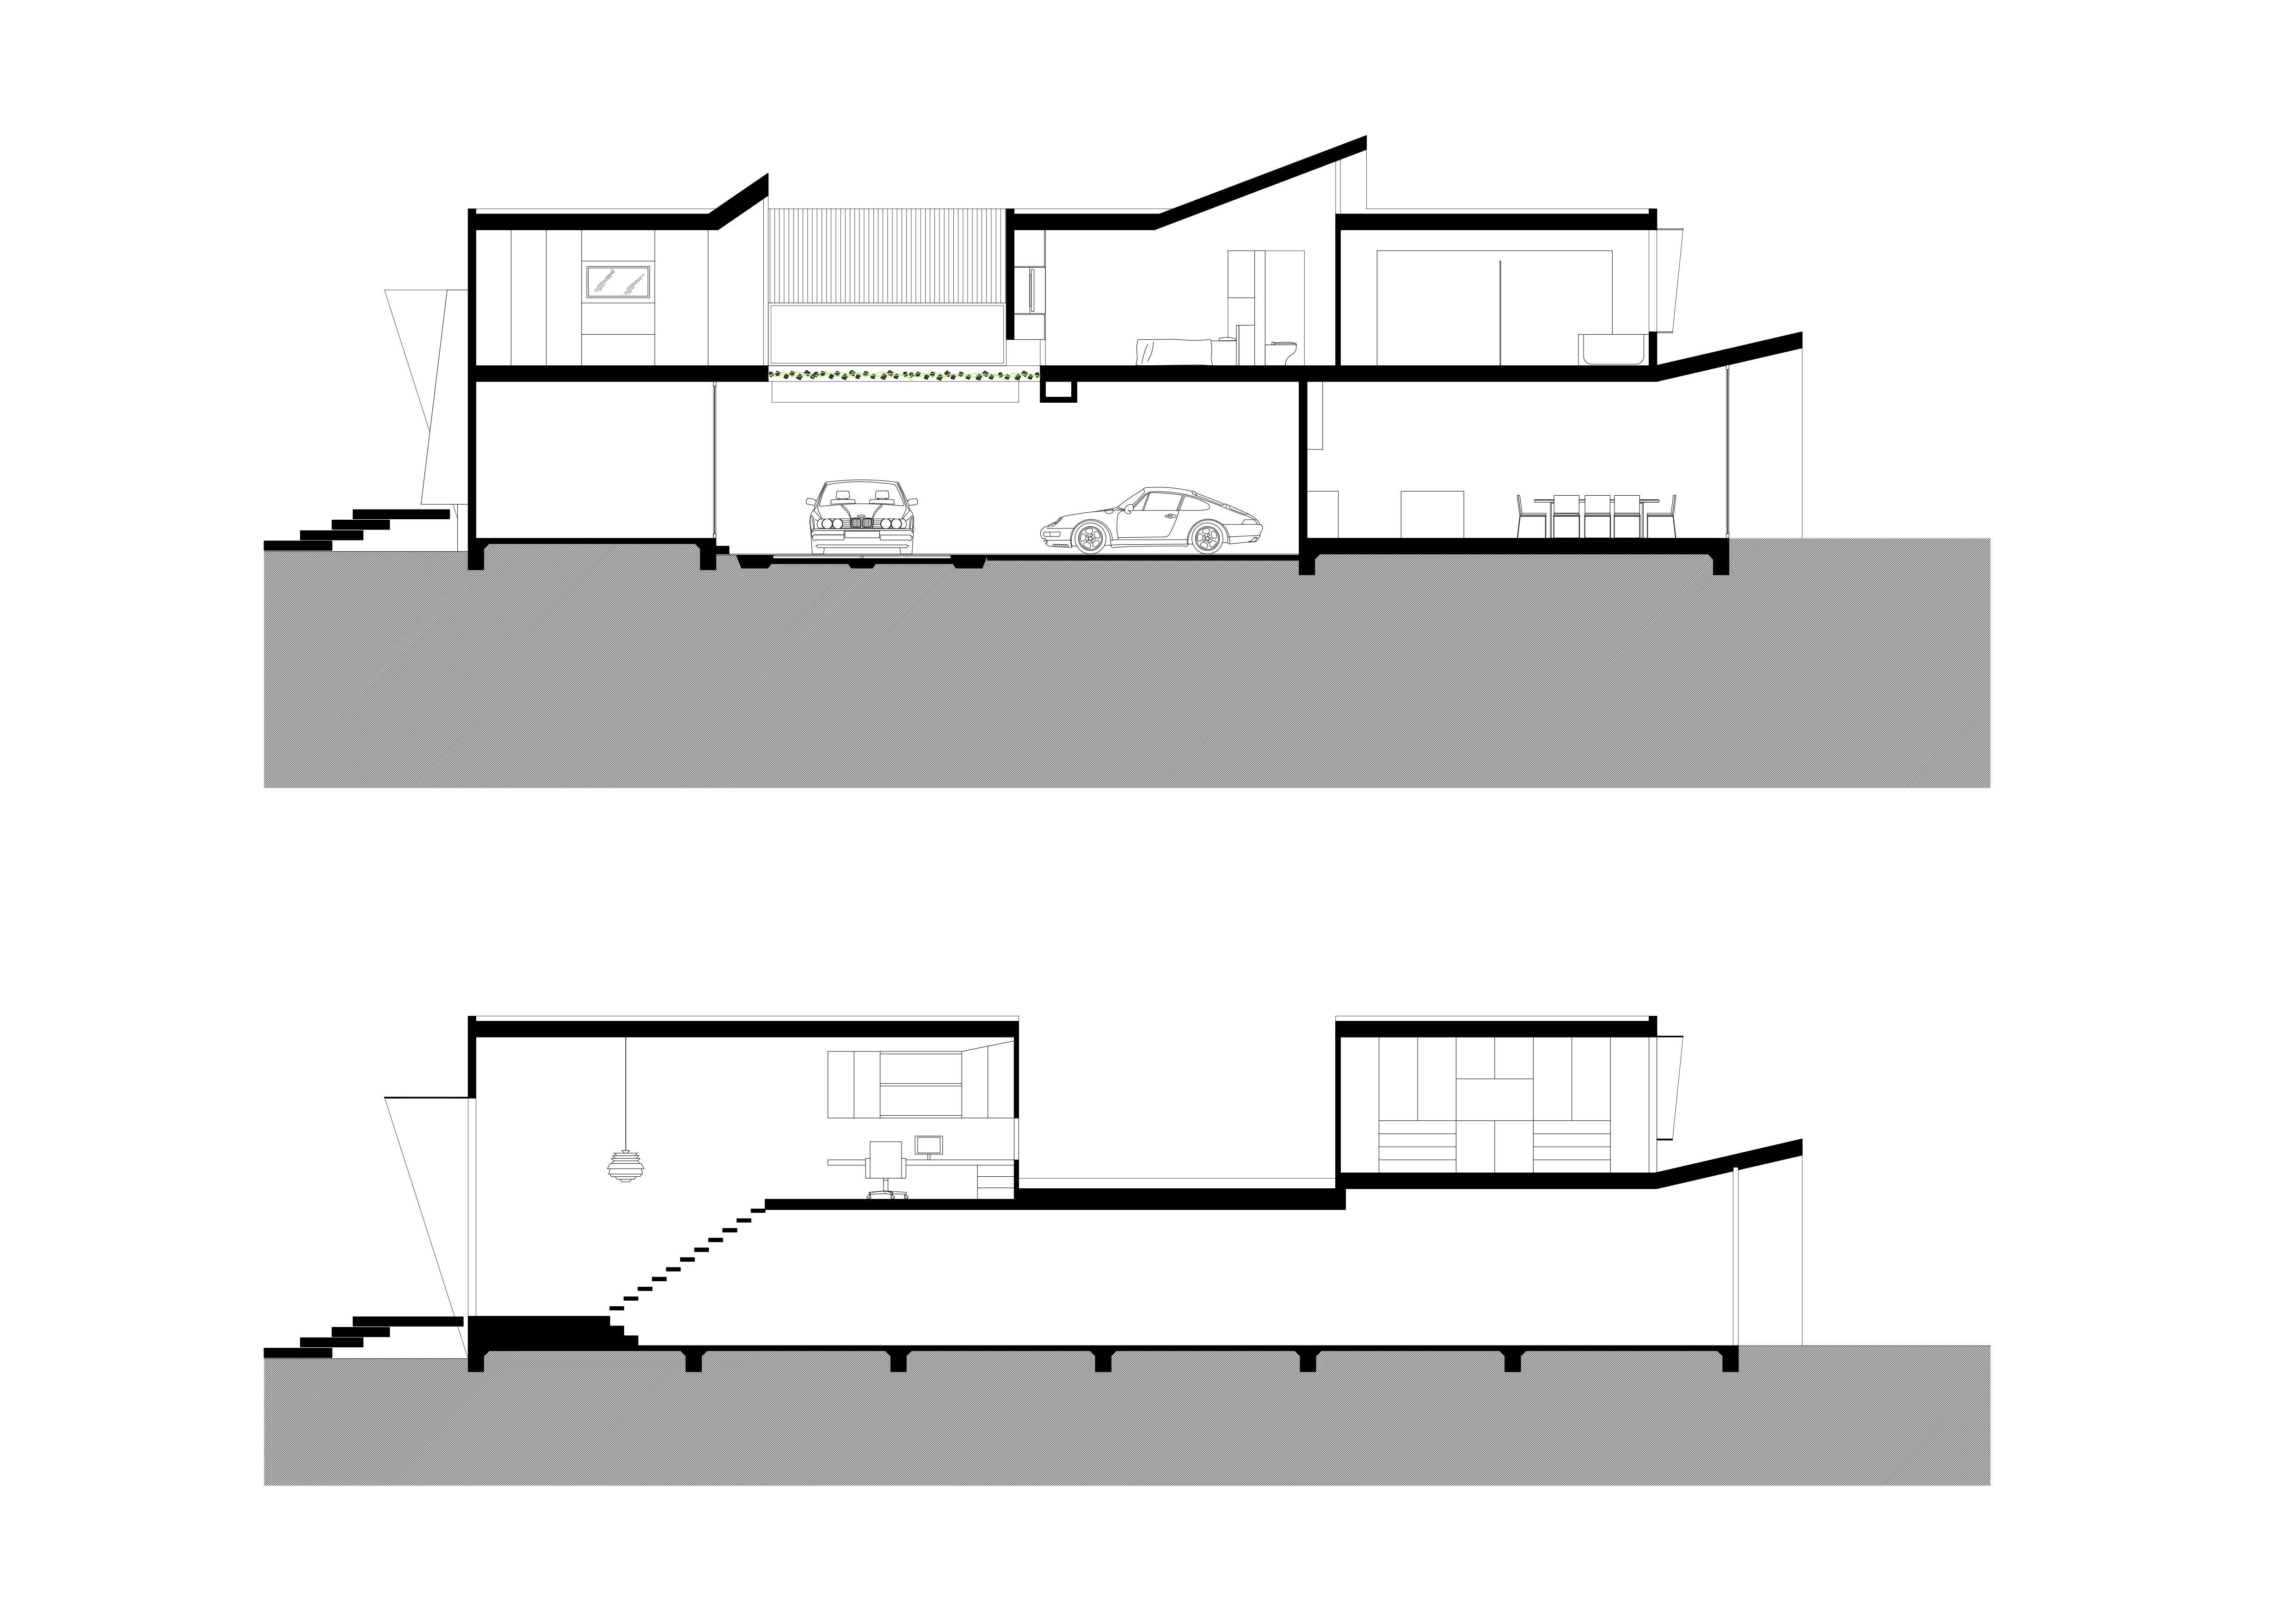 Architectural section drawings